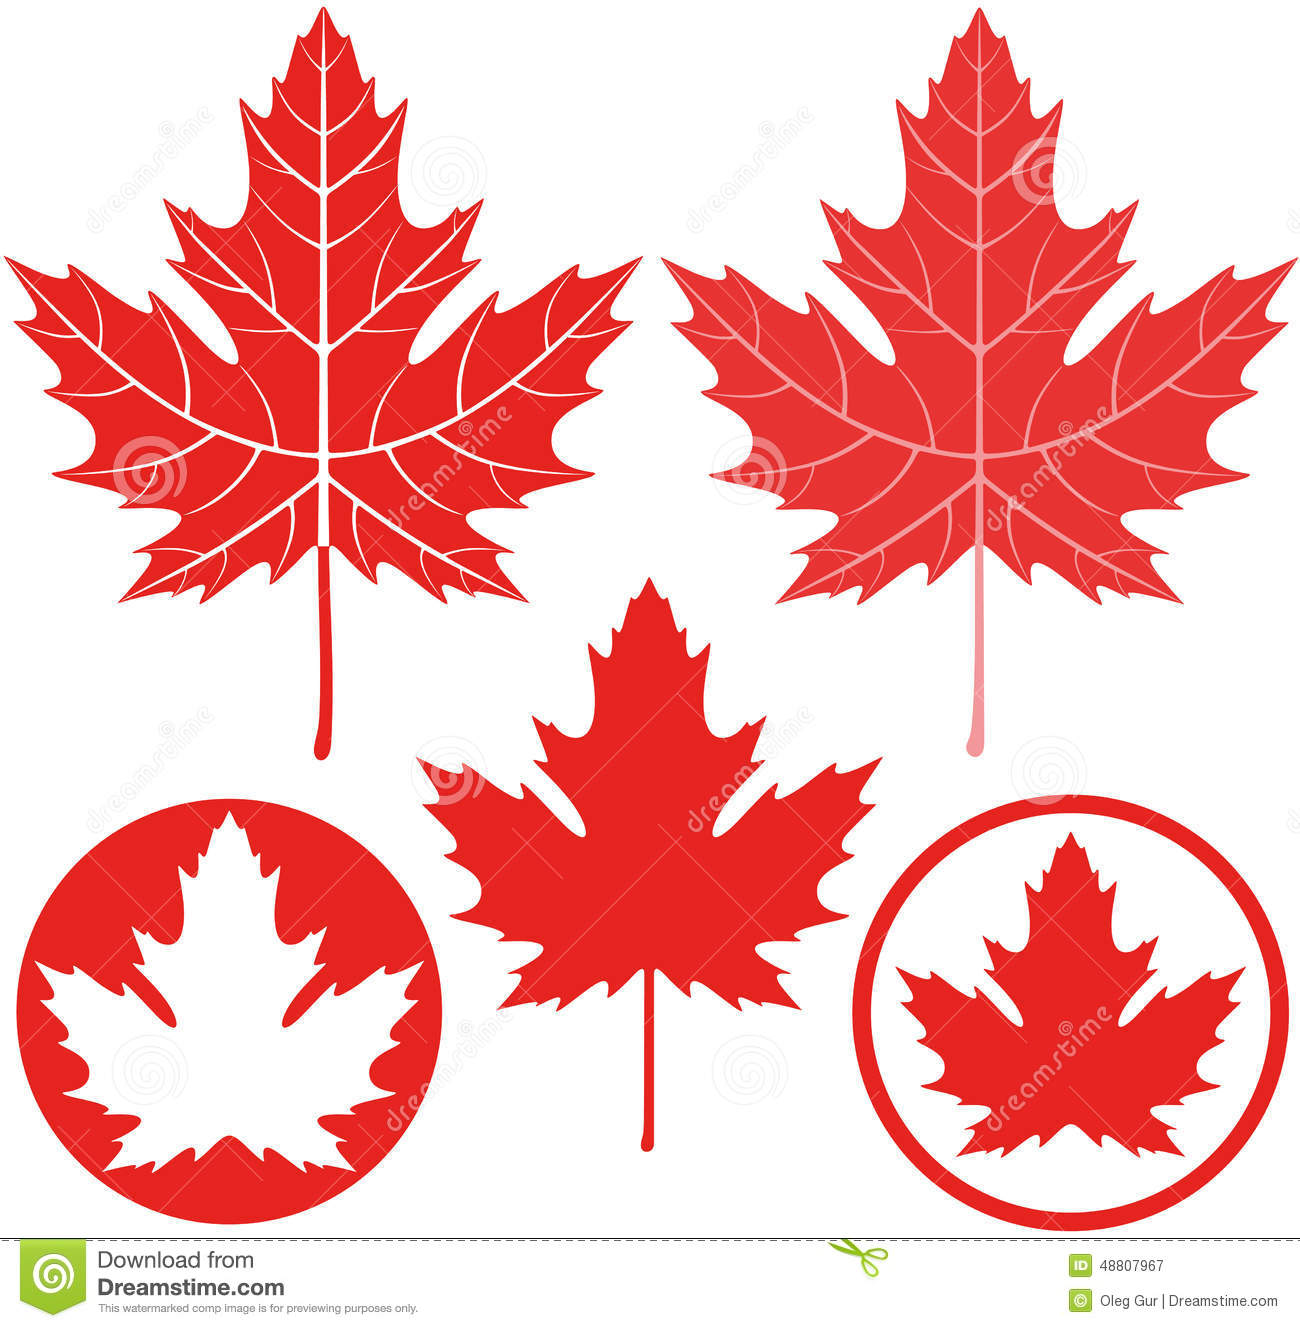 Maple Leaf Stock Vector - Image: 48807967